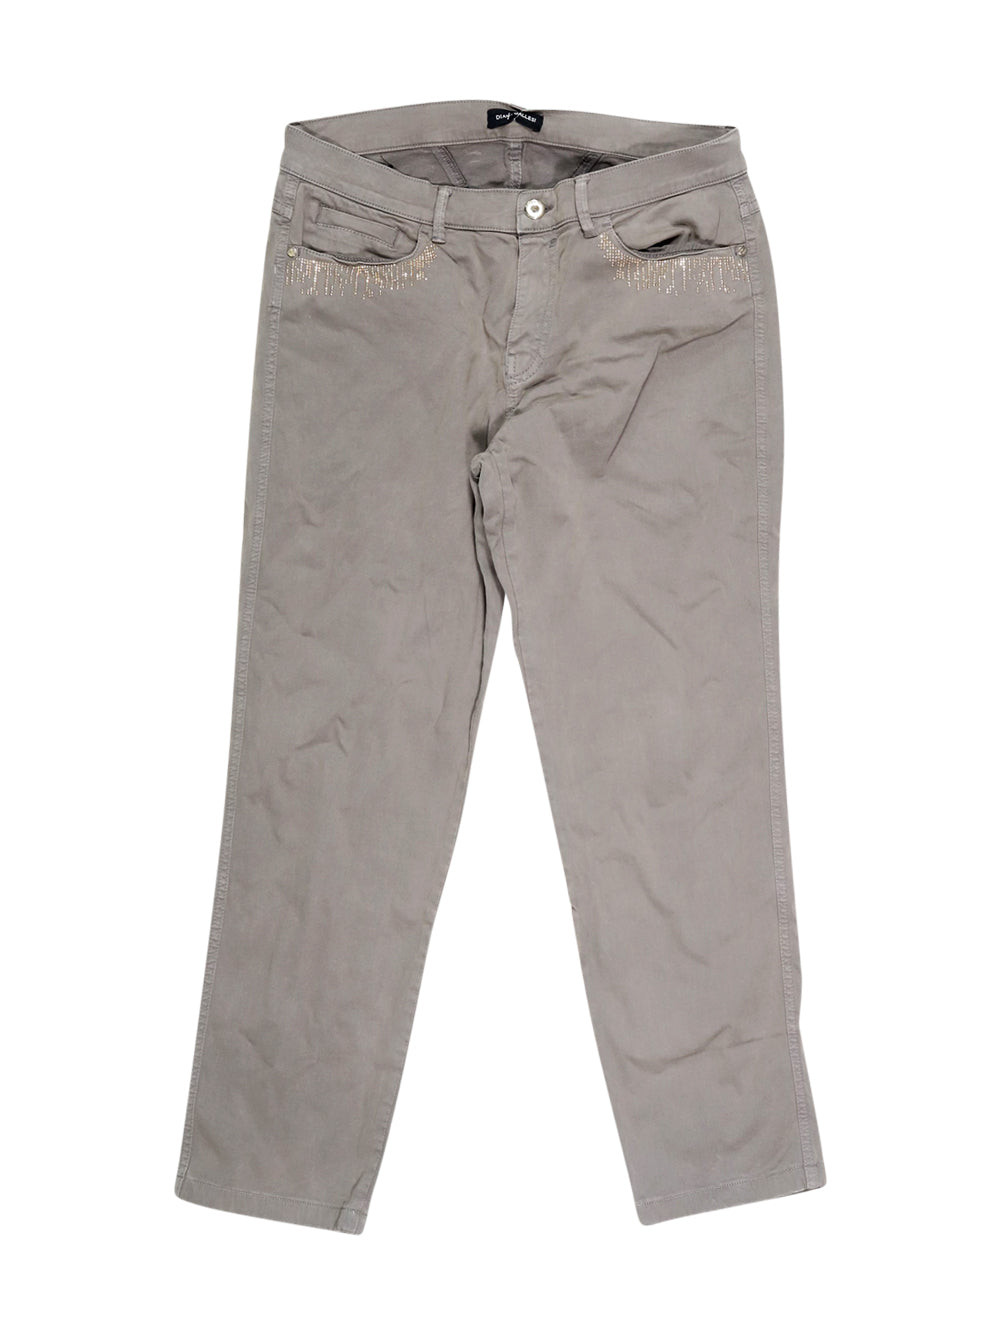 Front photo of Preloved Diana Gallesi Grey Woman's trousers - size 12/L